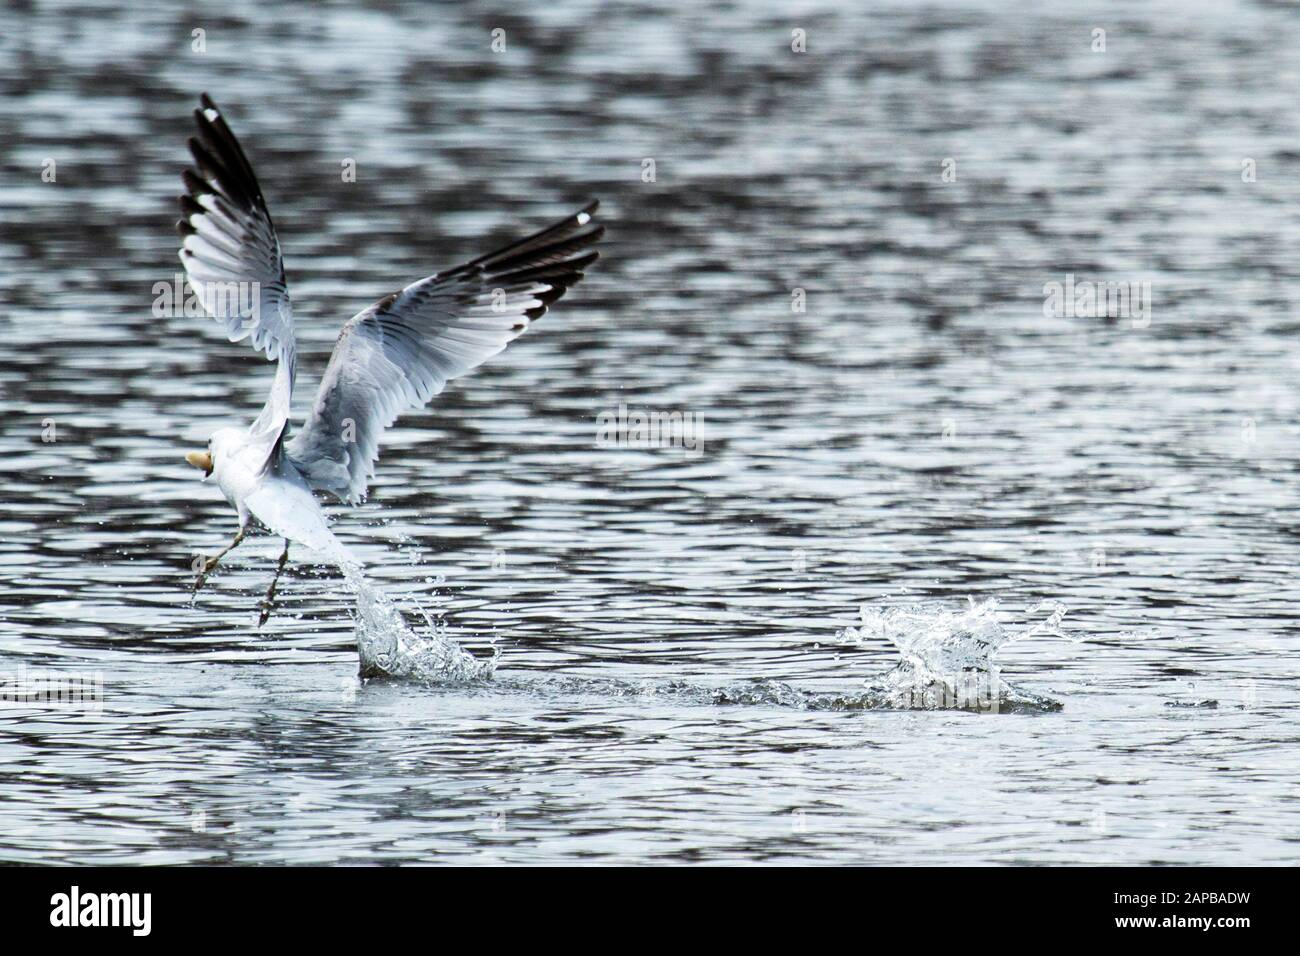 A seagull flying away after grabing some bread from the water Stock Photo